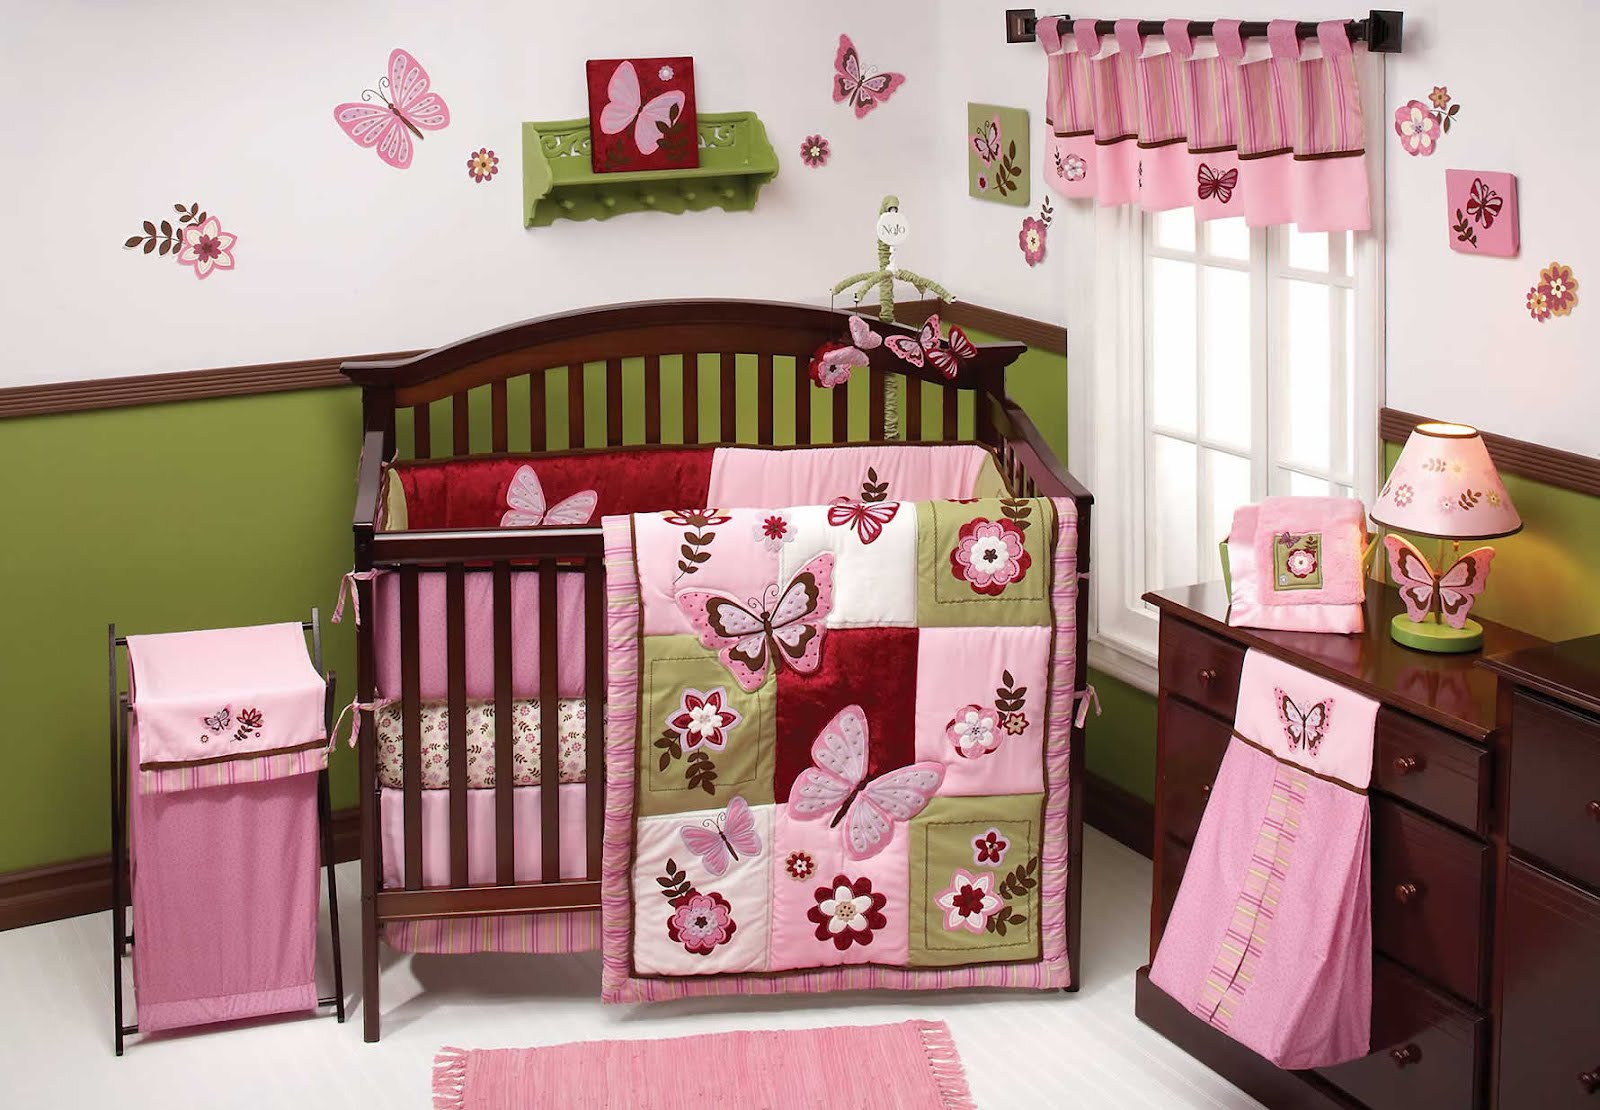 nojo baby bedding review giveaway two of a kind working on a full house. Black Bedroom Furniture Sets. Home Design Ideas